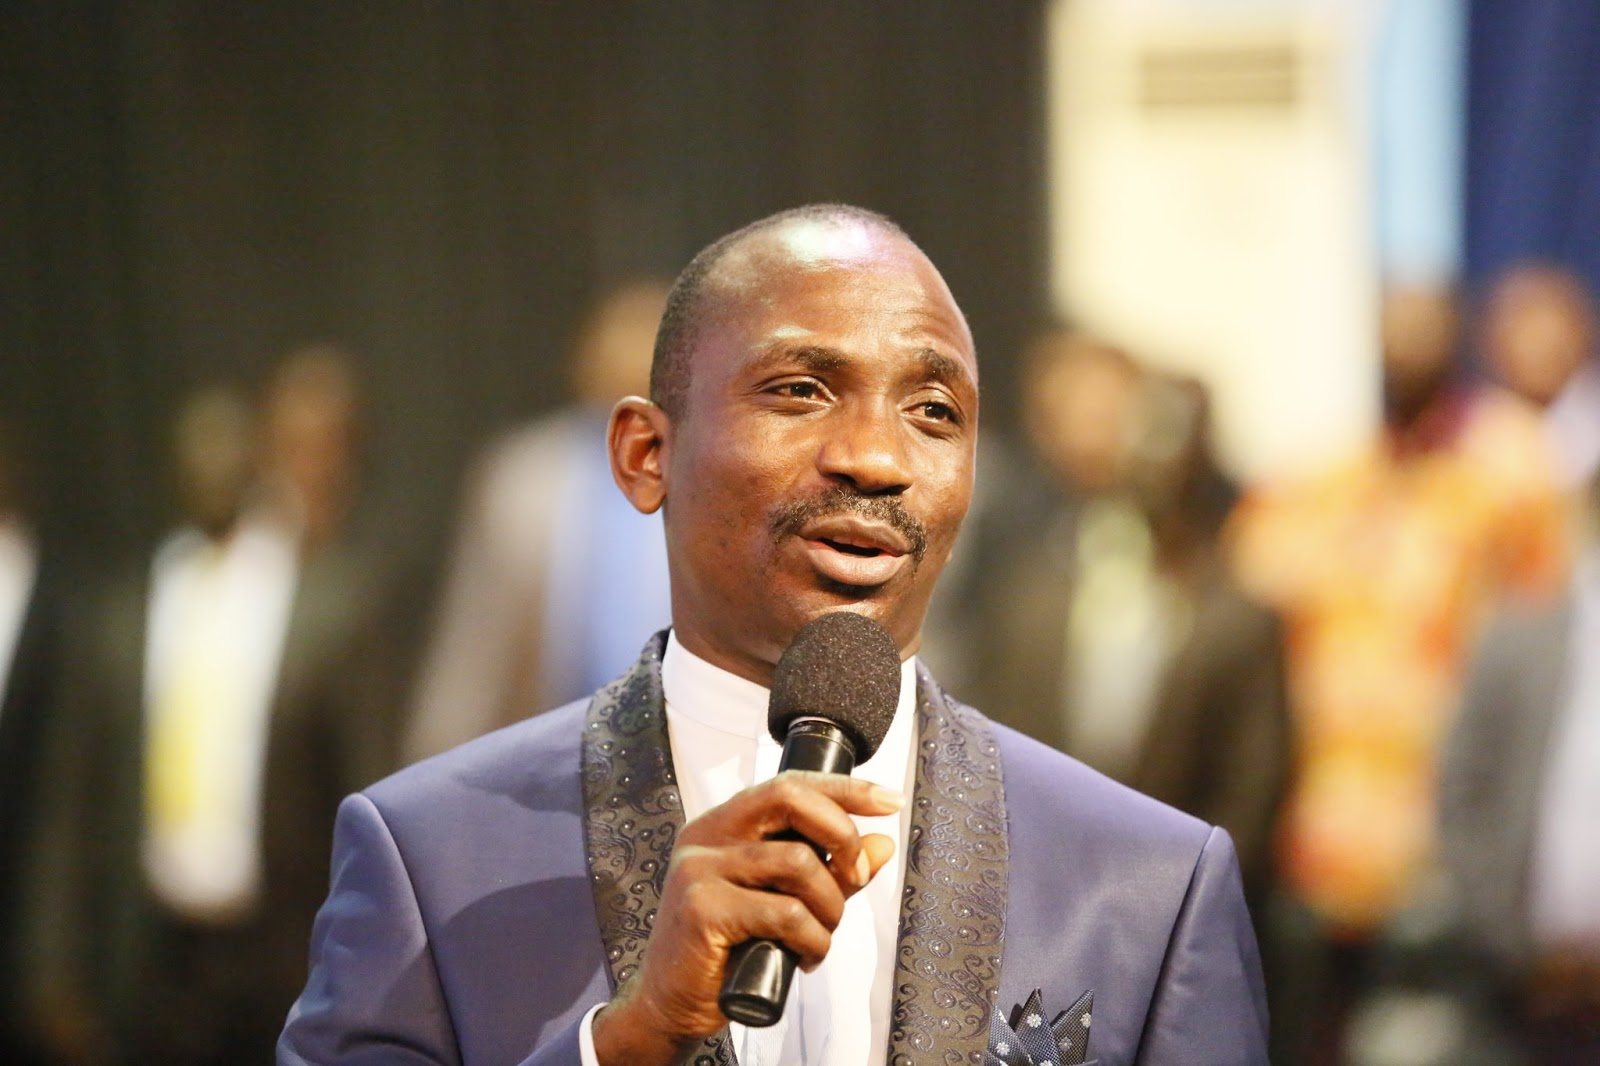 Dunamis' Daily Devotional written by Pastor Paul Enenche- chidispalace.com